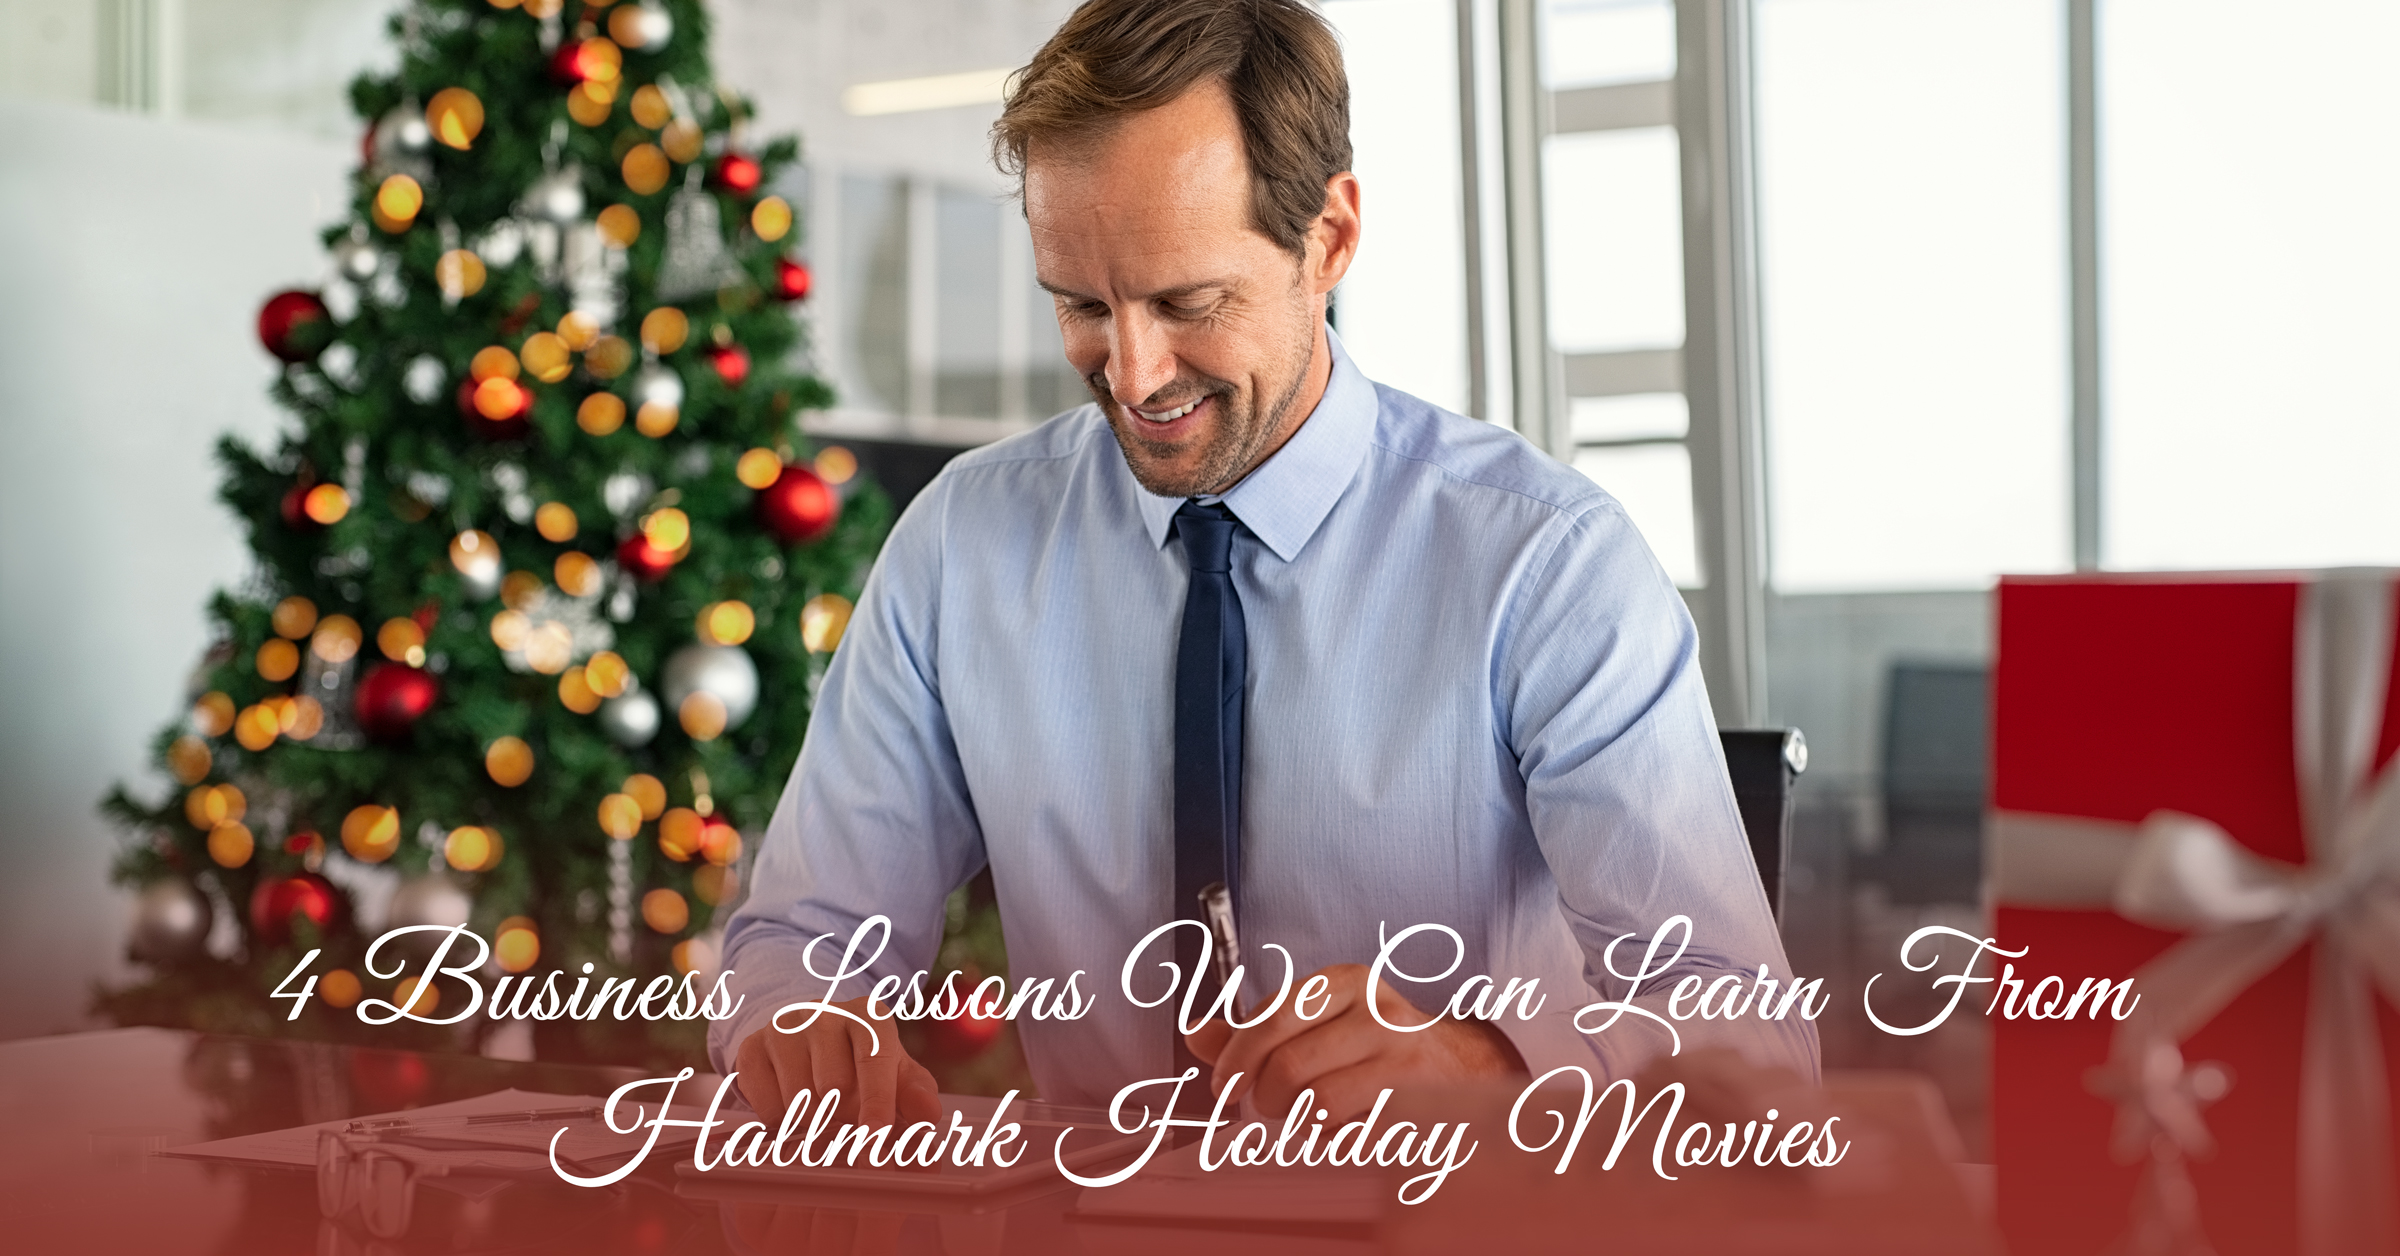 4 Business Lessons We Can Learn From Hallmark Holiday Movies